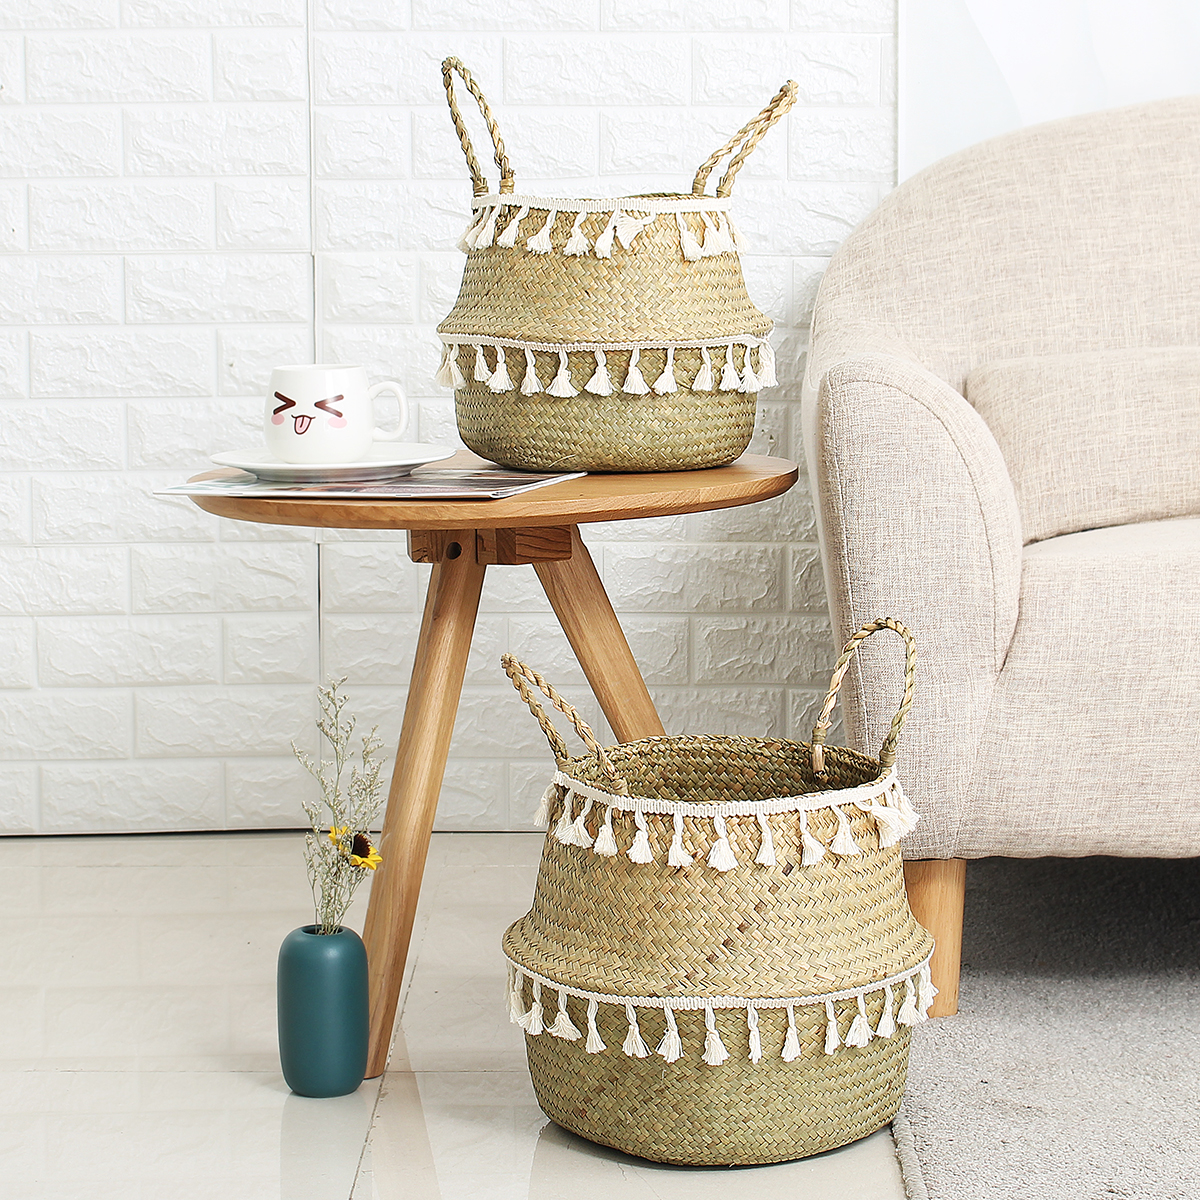 Handmade Bamboo Storage Baskets Seagrass Wicker Basket Garden Flower Pot Laundry Basket Container Toy Holder with White Tassel